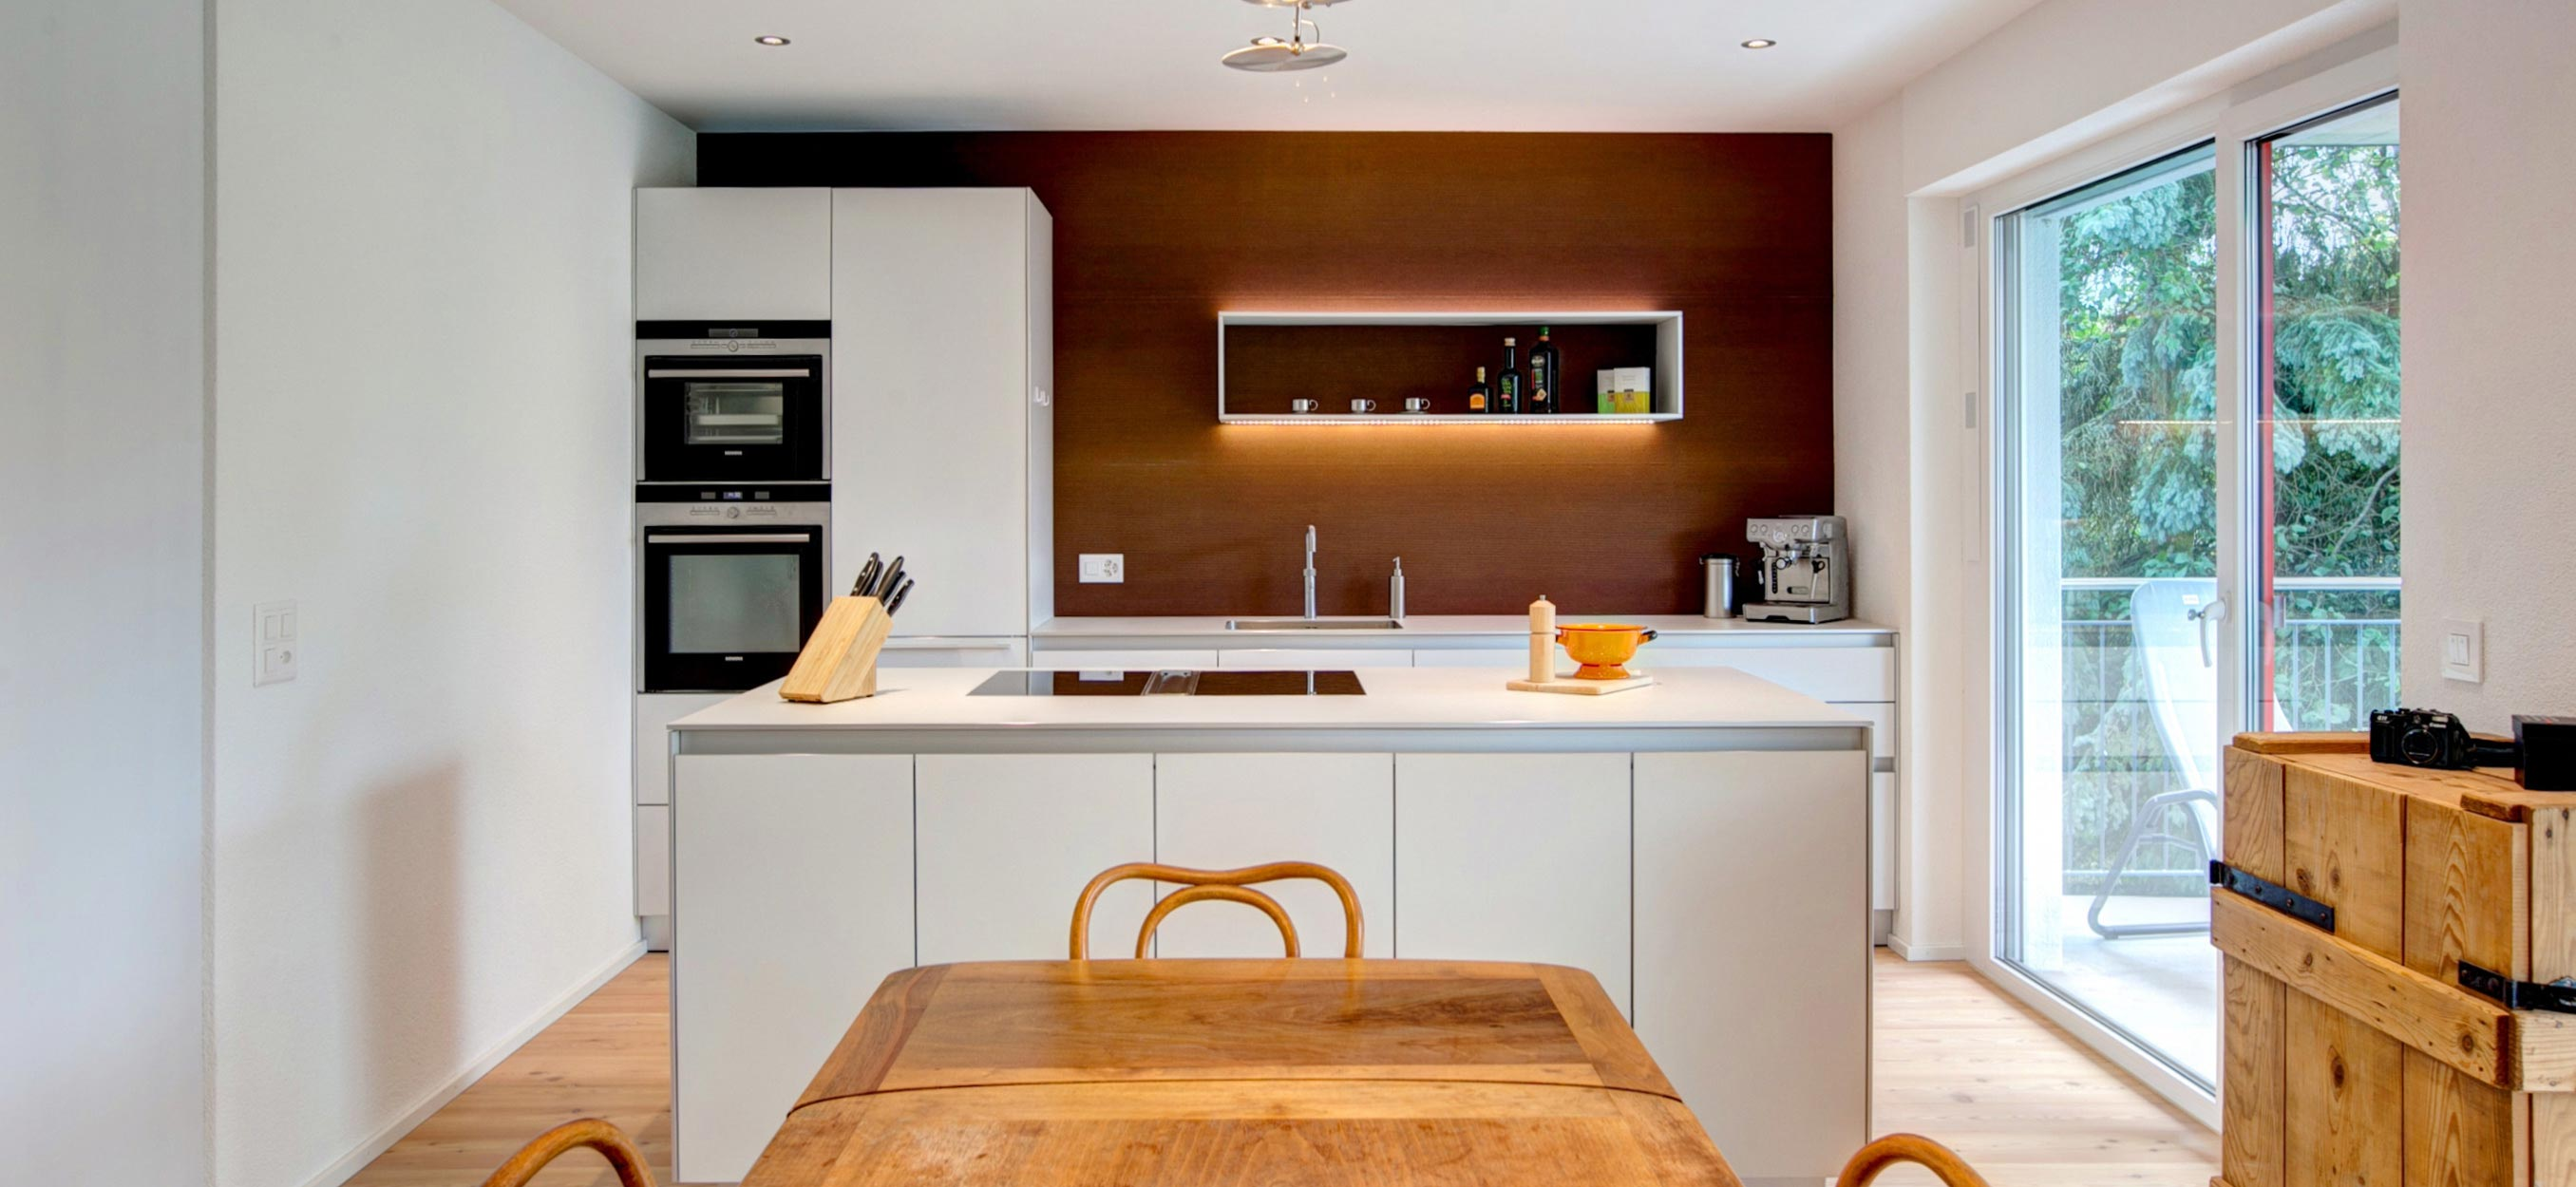 Pixroom Header Startbilder 01